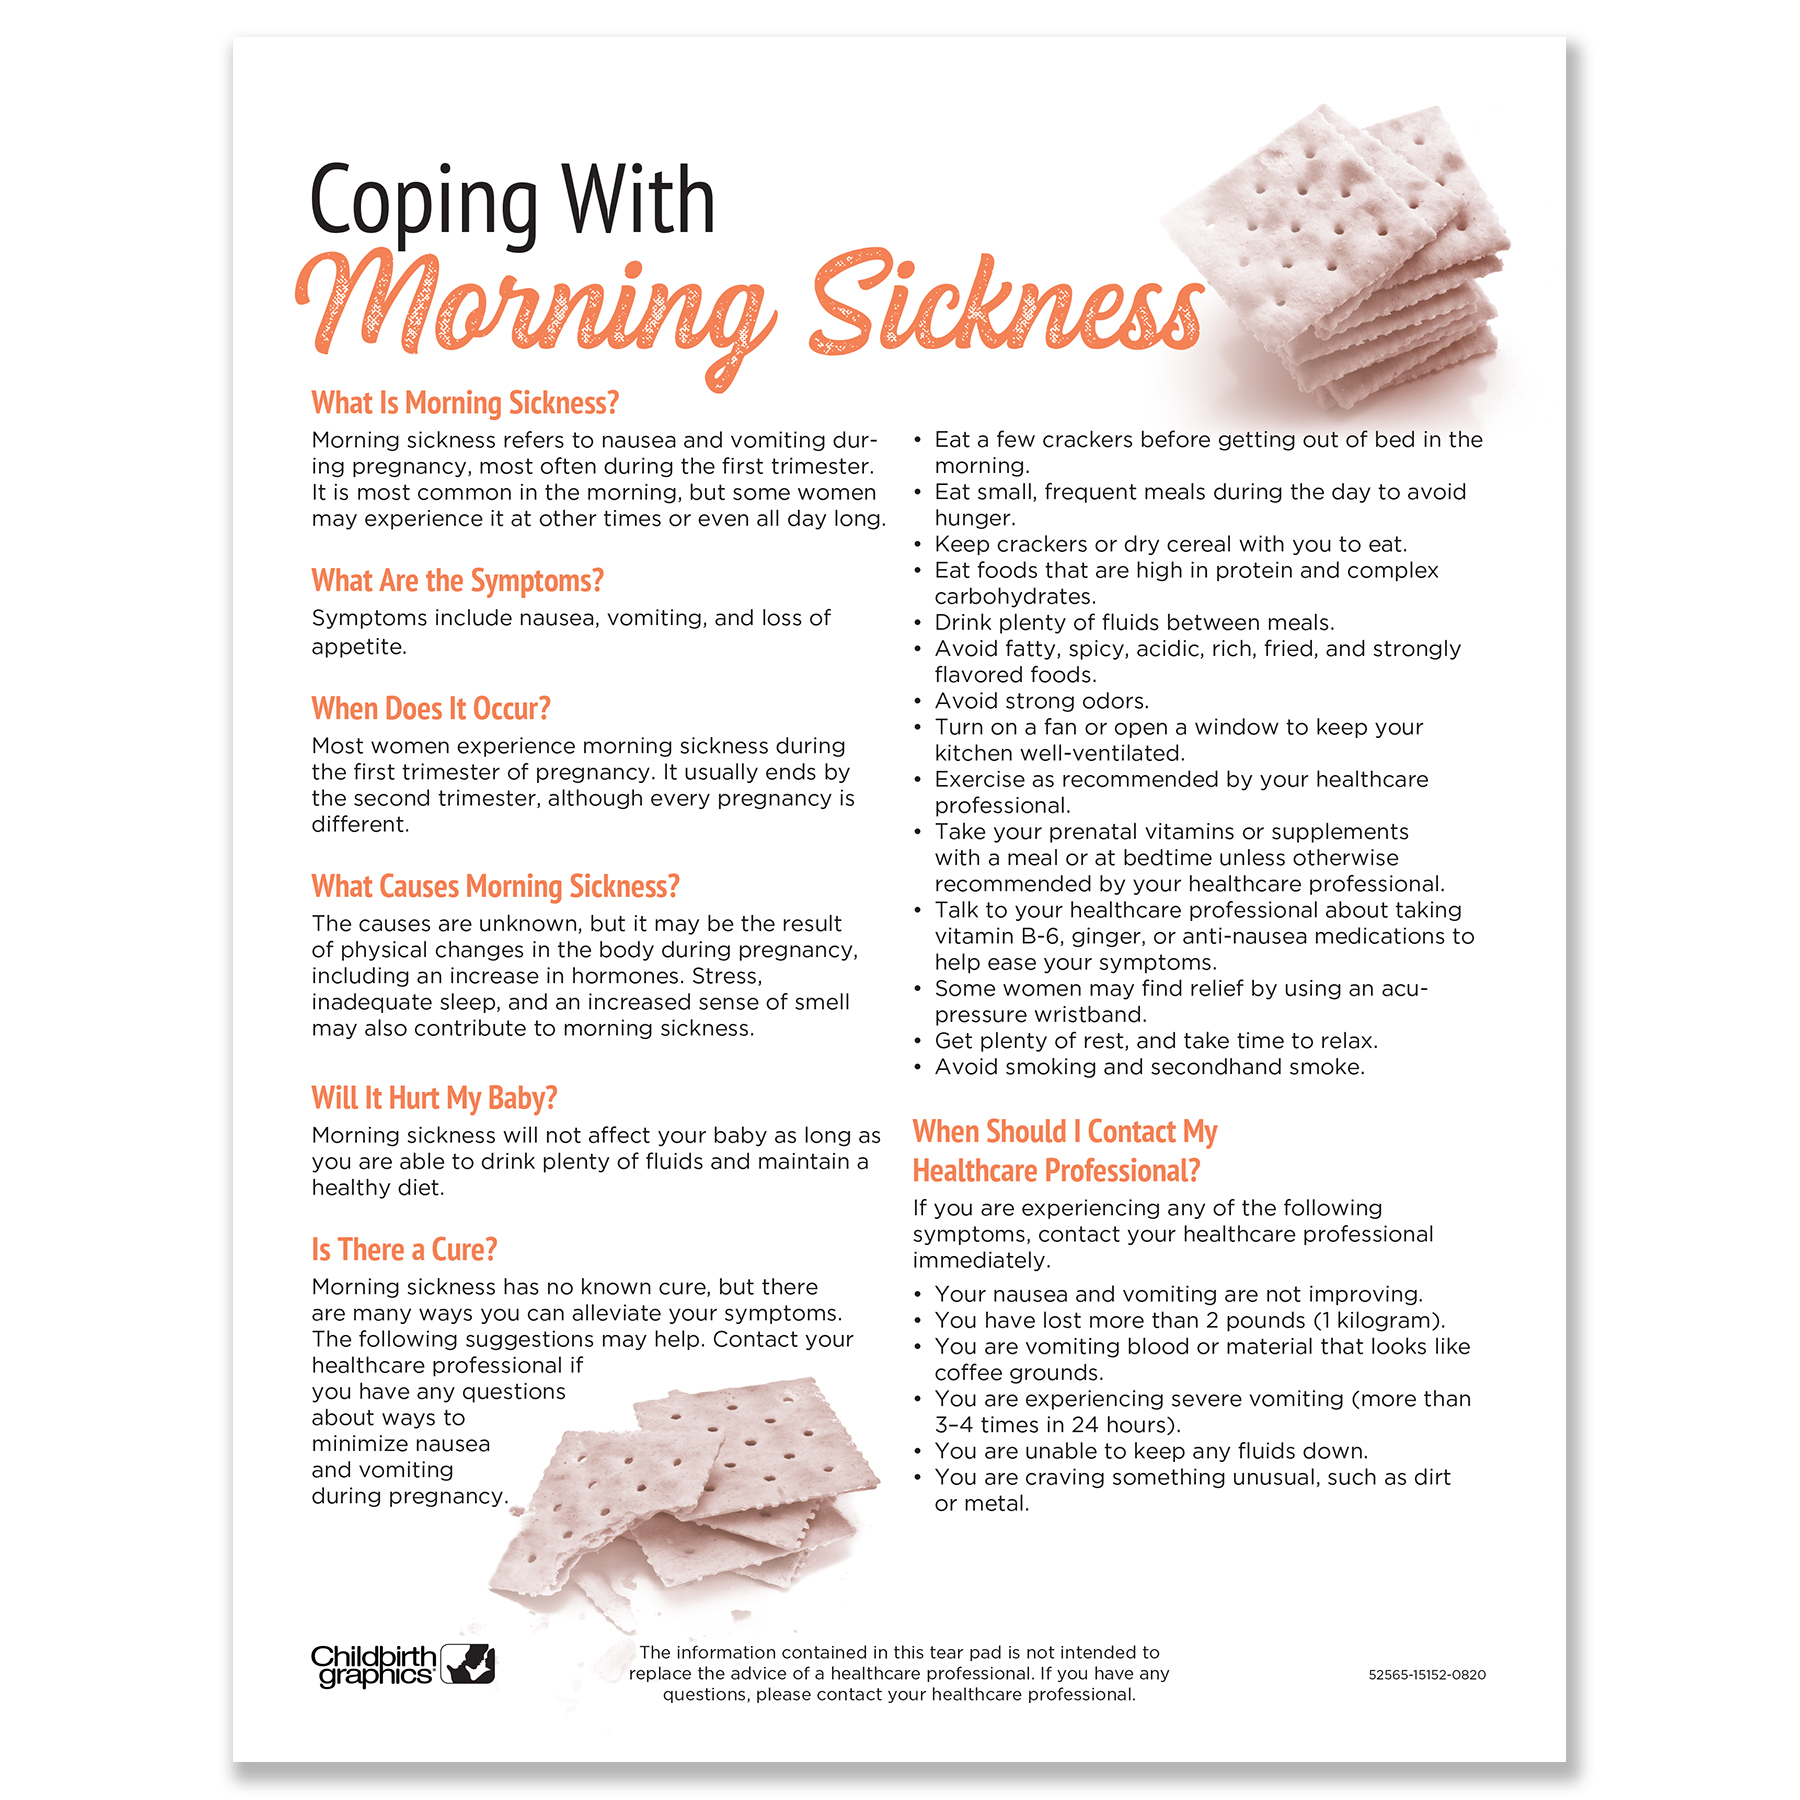 Coping with Morning Sickness 2-color tear pad, definition & suggestions to lessen morning sickness, Childbirth Graphics 52565